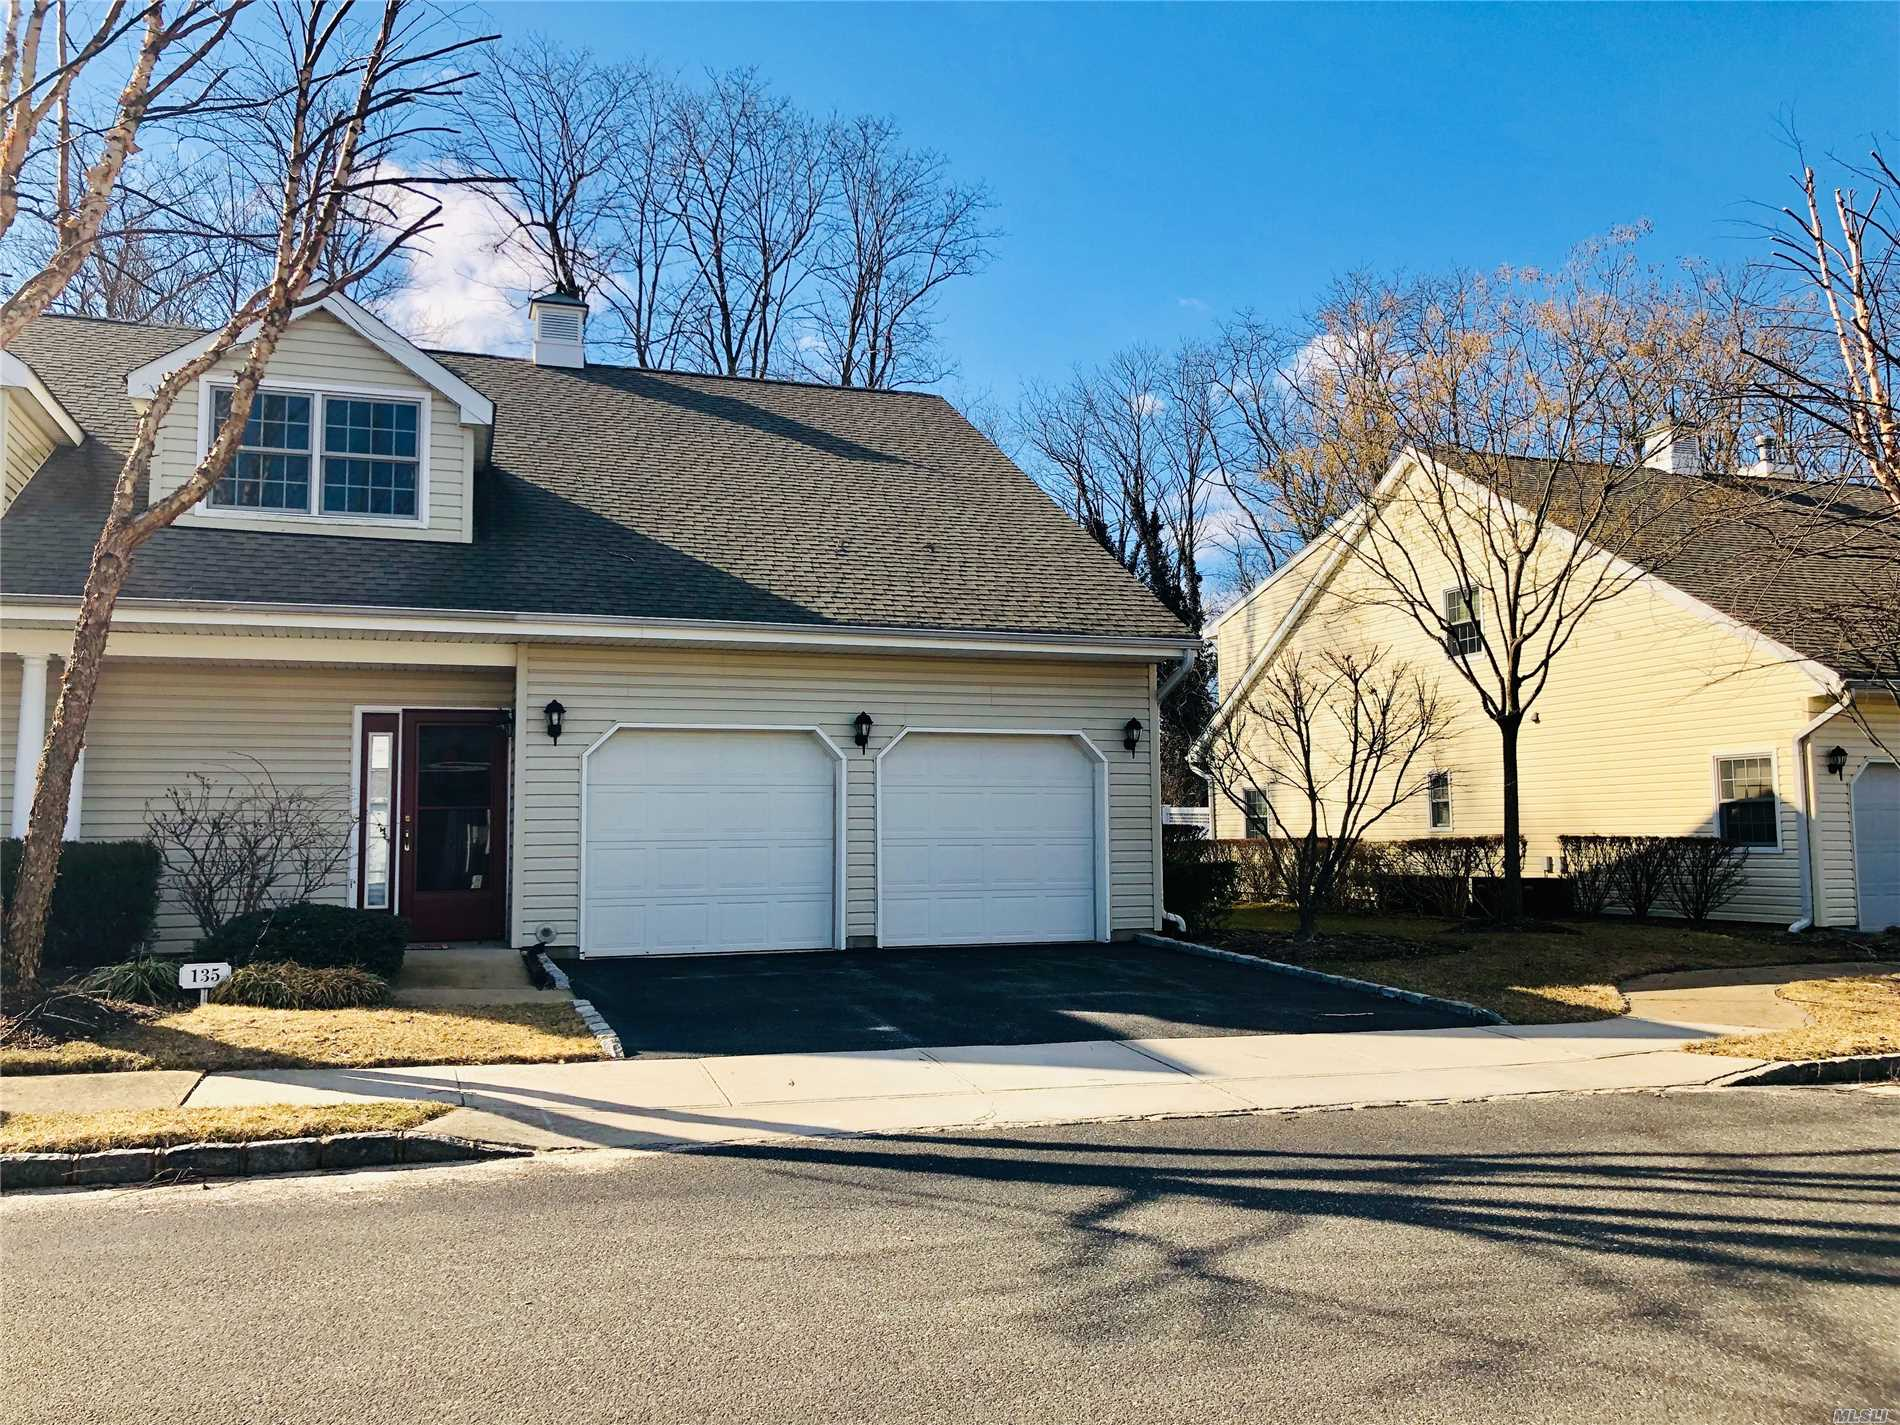 Sought After Corner Townhouse With Two Car Garage. Maintain An Upscale Quality Of Life With A Welcoming Foyer, Spacious Living Room And Elegant Formal Dining. Master Suite On First Floor. Laundry And Powder Room Complete The Main Level. The Second Floor Offers Another 2 Bedrooms, A Full Bathroom And Bonus Open Family Room, Overlooking Main Level. Access To Clubhouse, Pool, Gym, 24/7 Security And More.